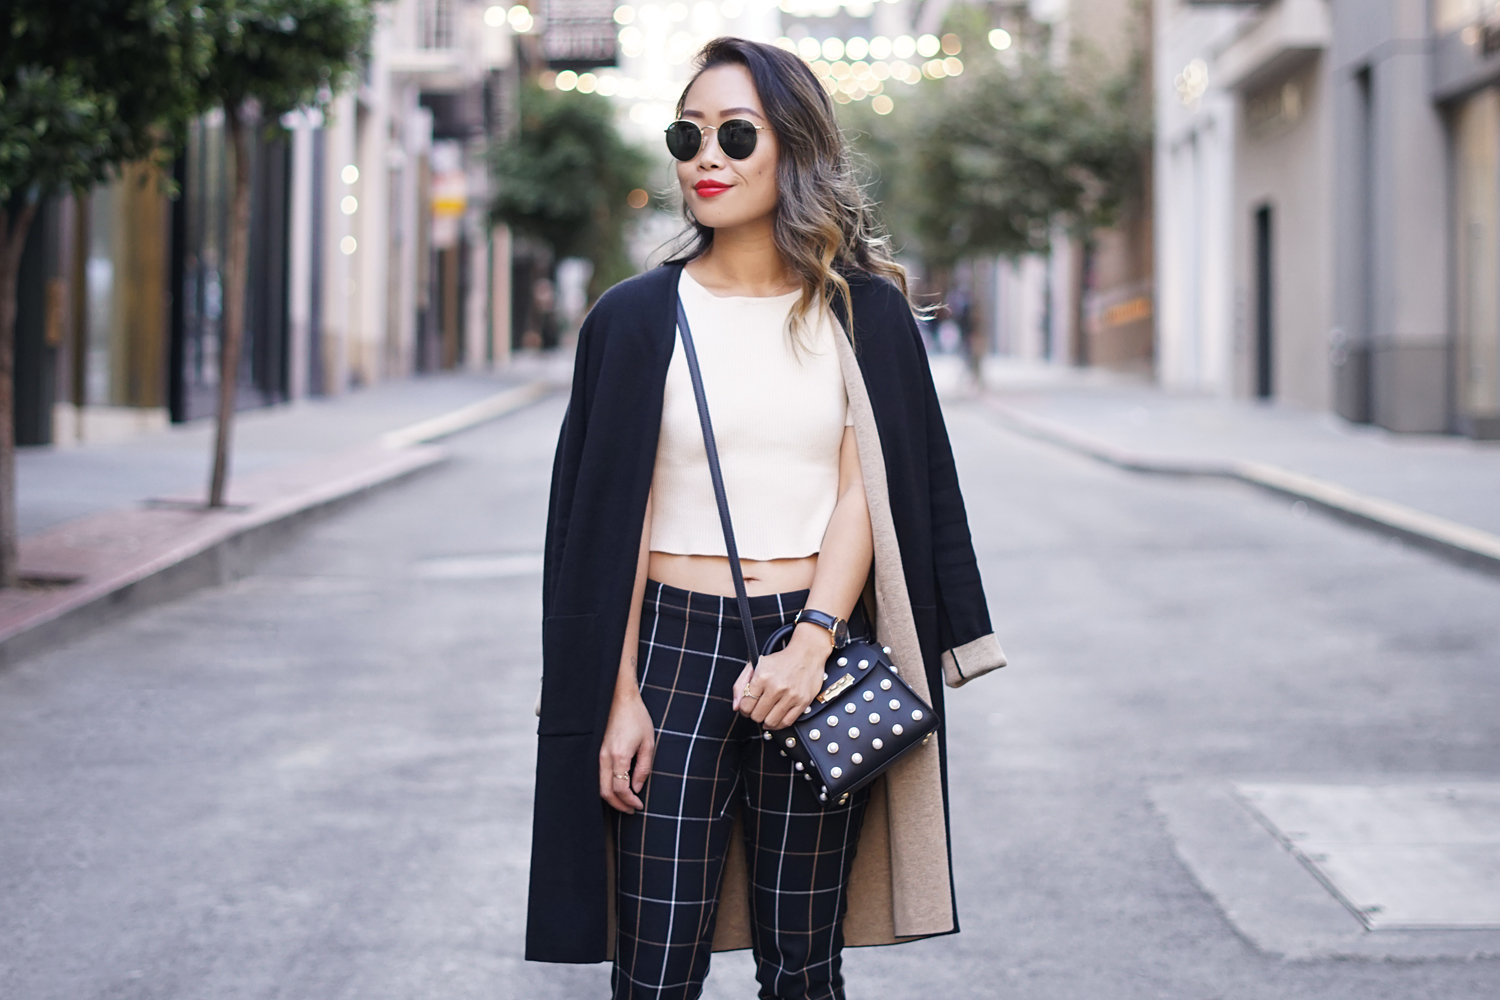 01maidenlane-sf-fashion-style-ootd